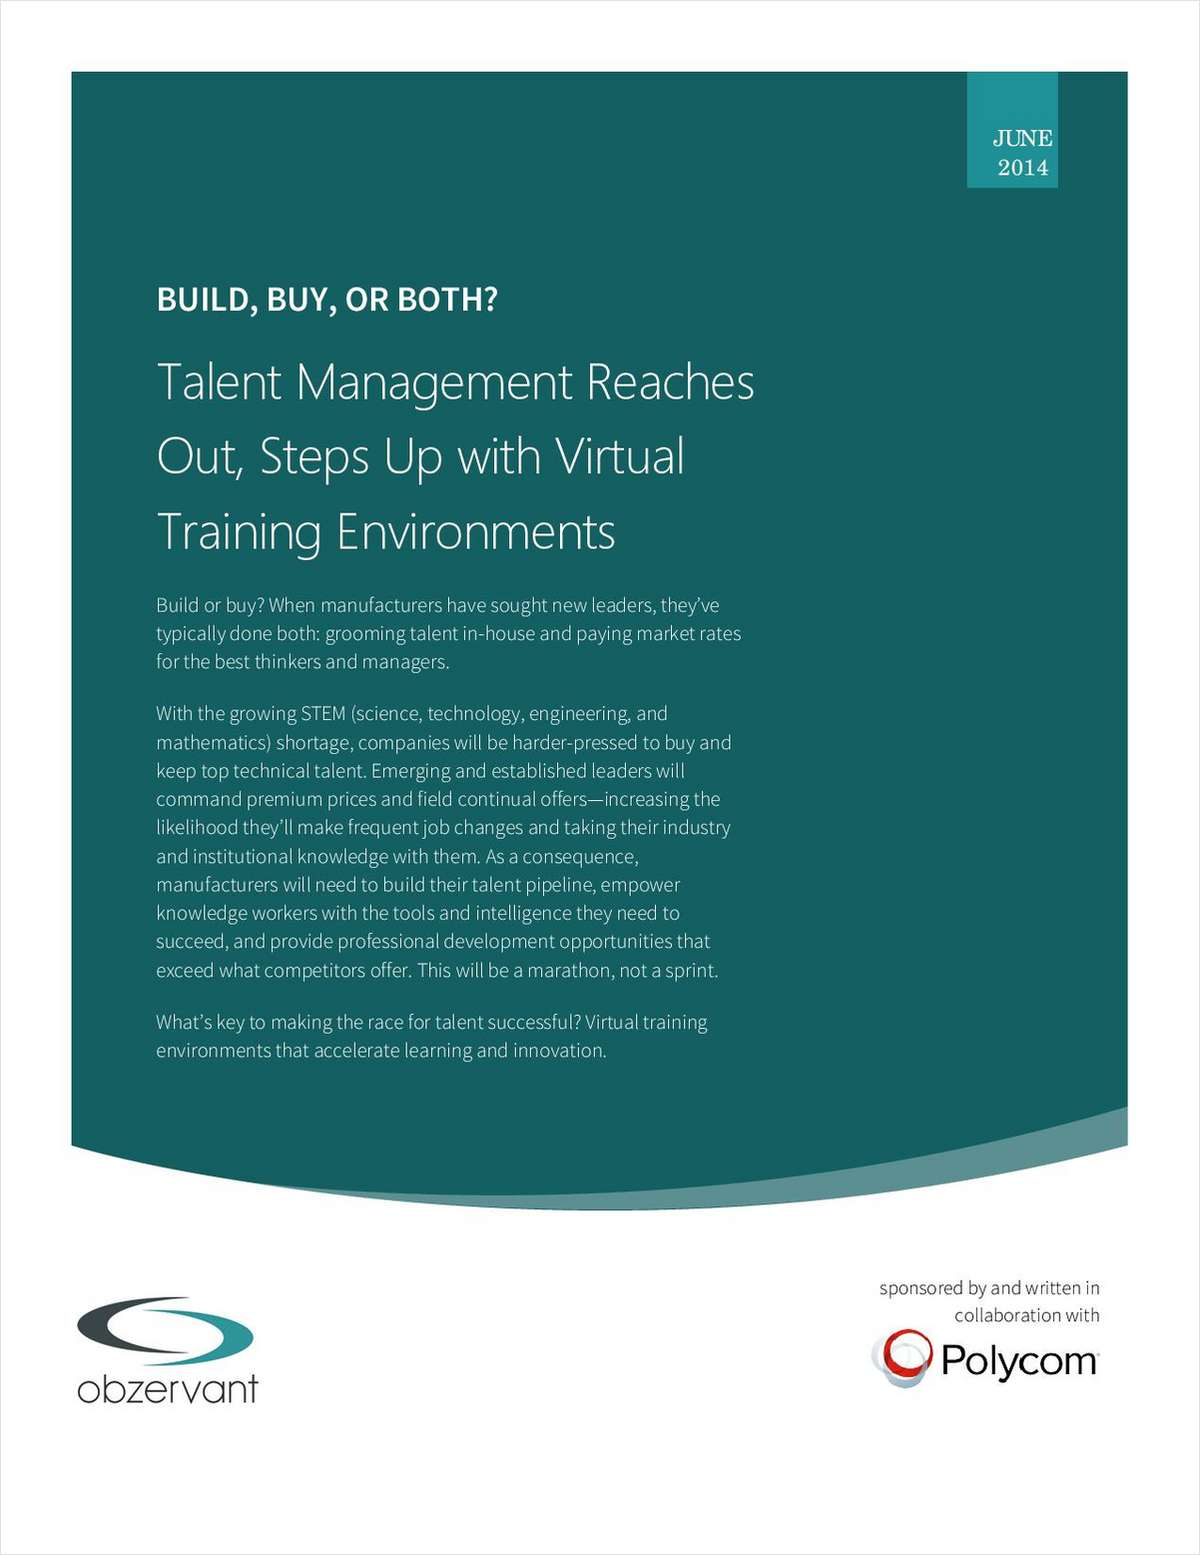 Build, Buy, or Both? Talent Management Reaches Out, Steps Up with Virtual Training Environments